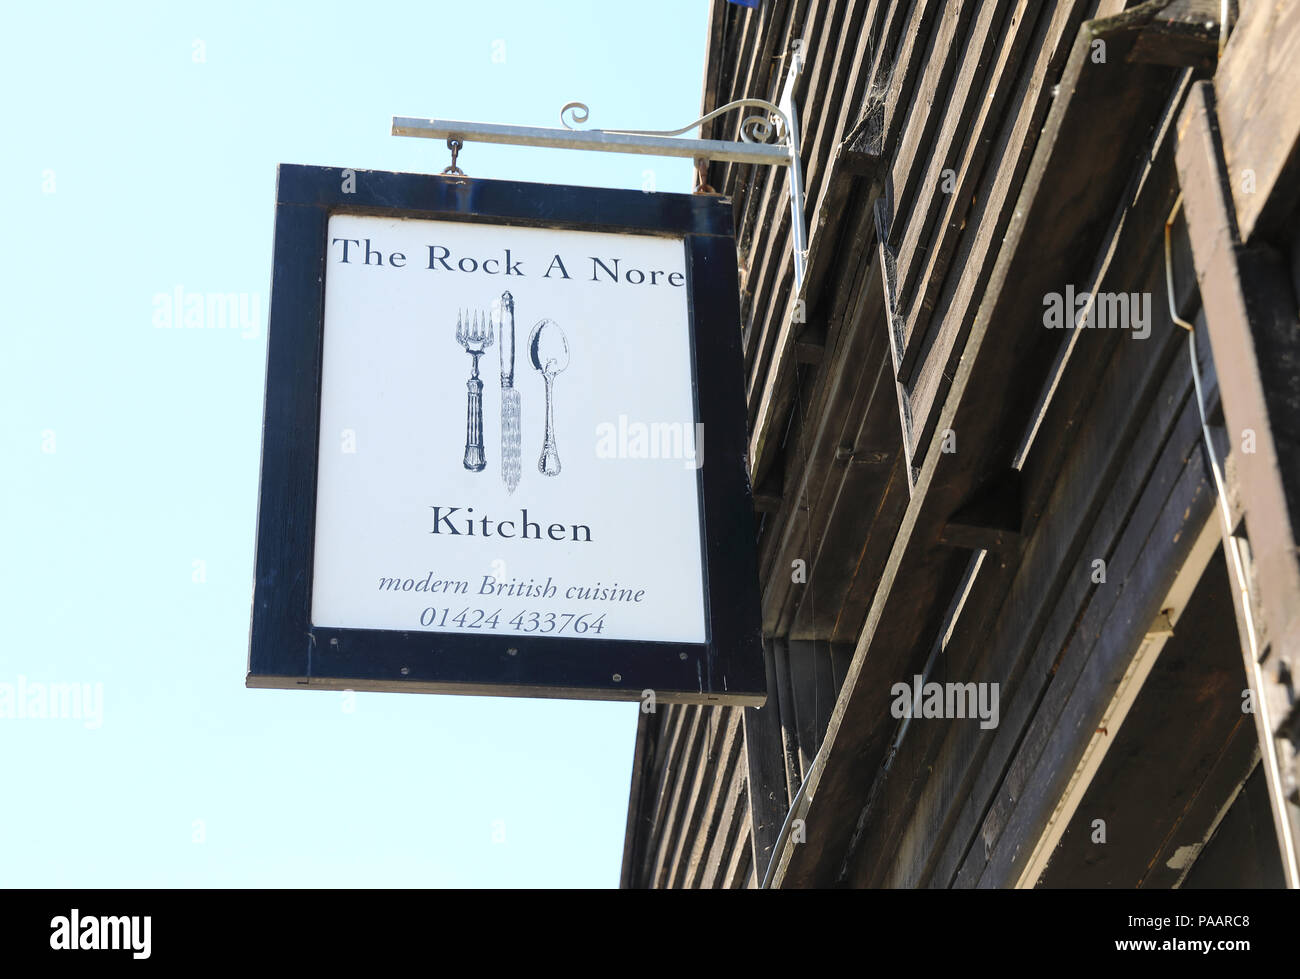 The Rock-a-Nore Kitchen restaurant in one of the black wooden sheds, known as the 'Net Shops', in Hasting's old fishing quarter,in East Sussex, UK - Stock Image